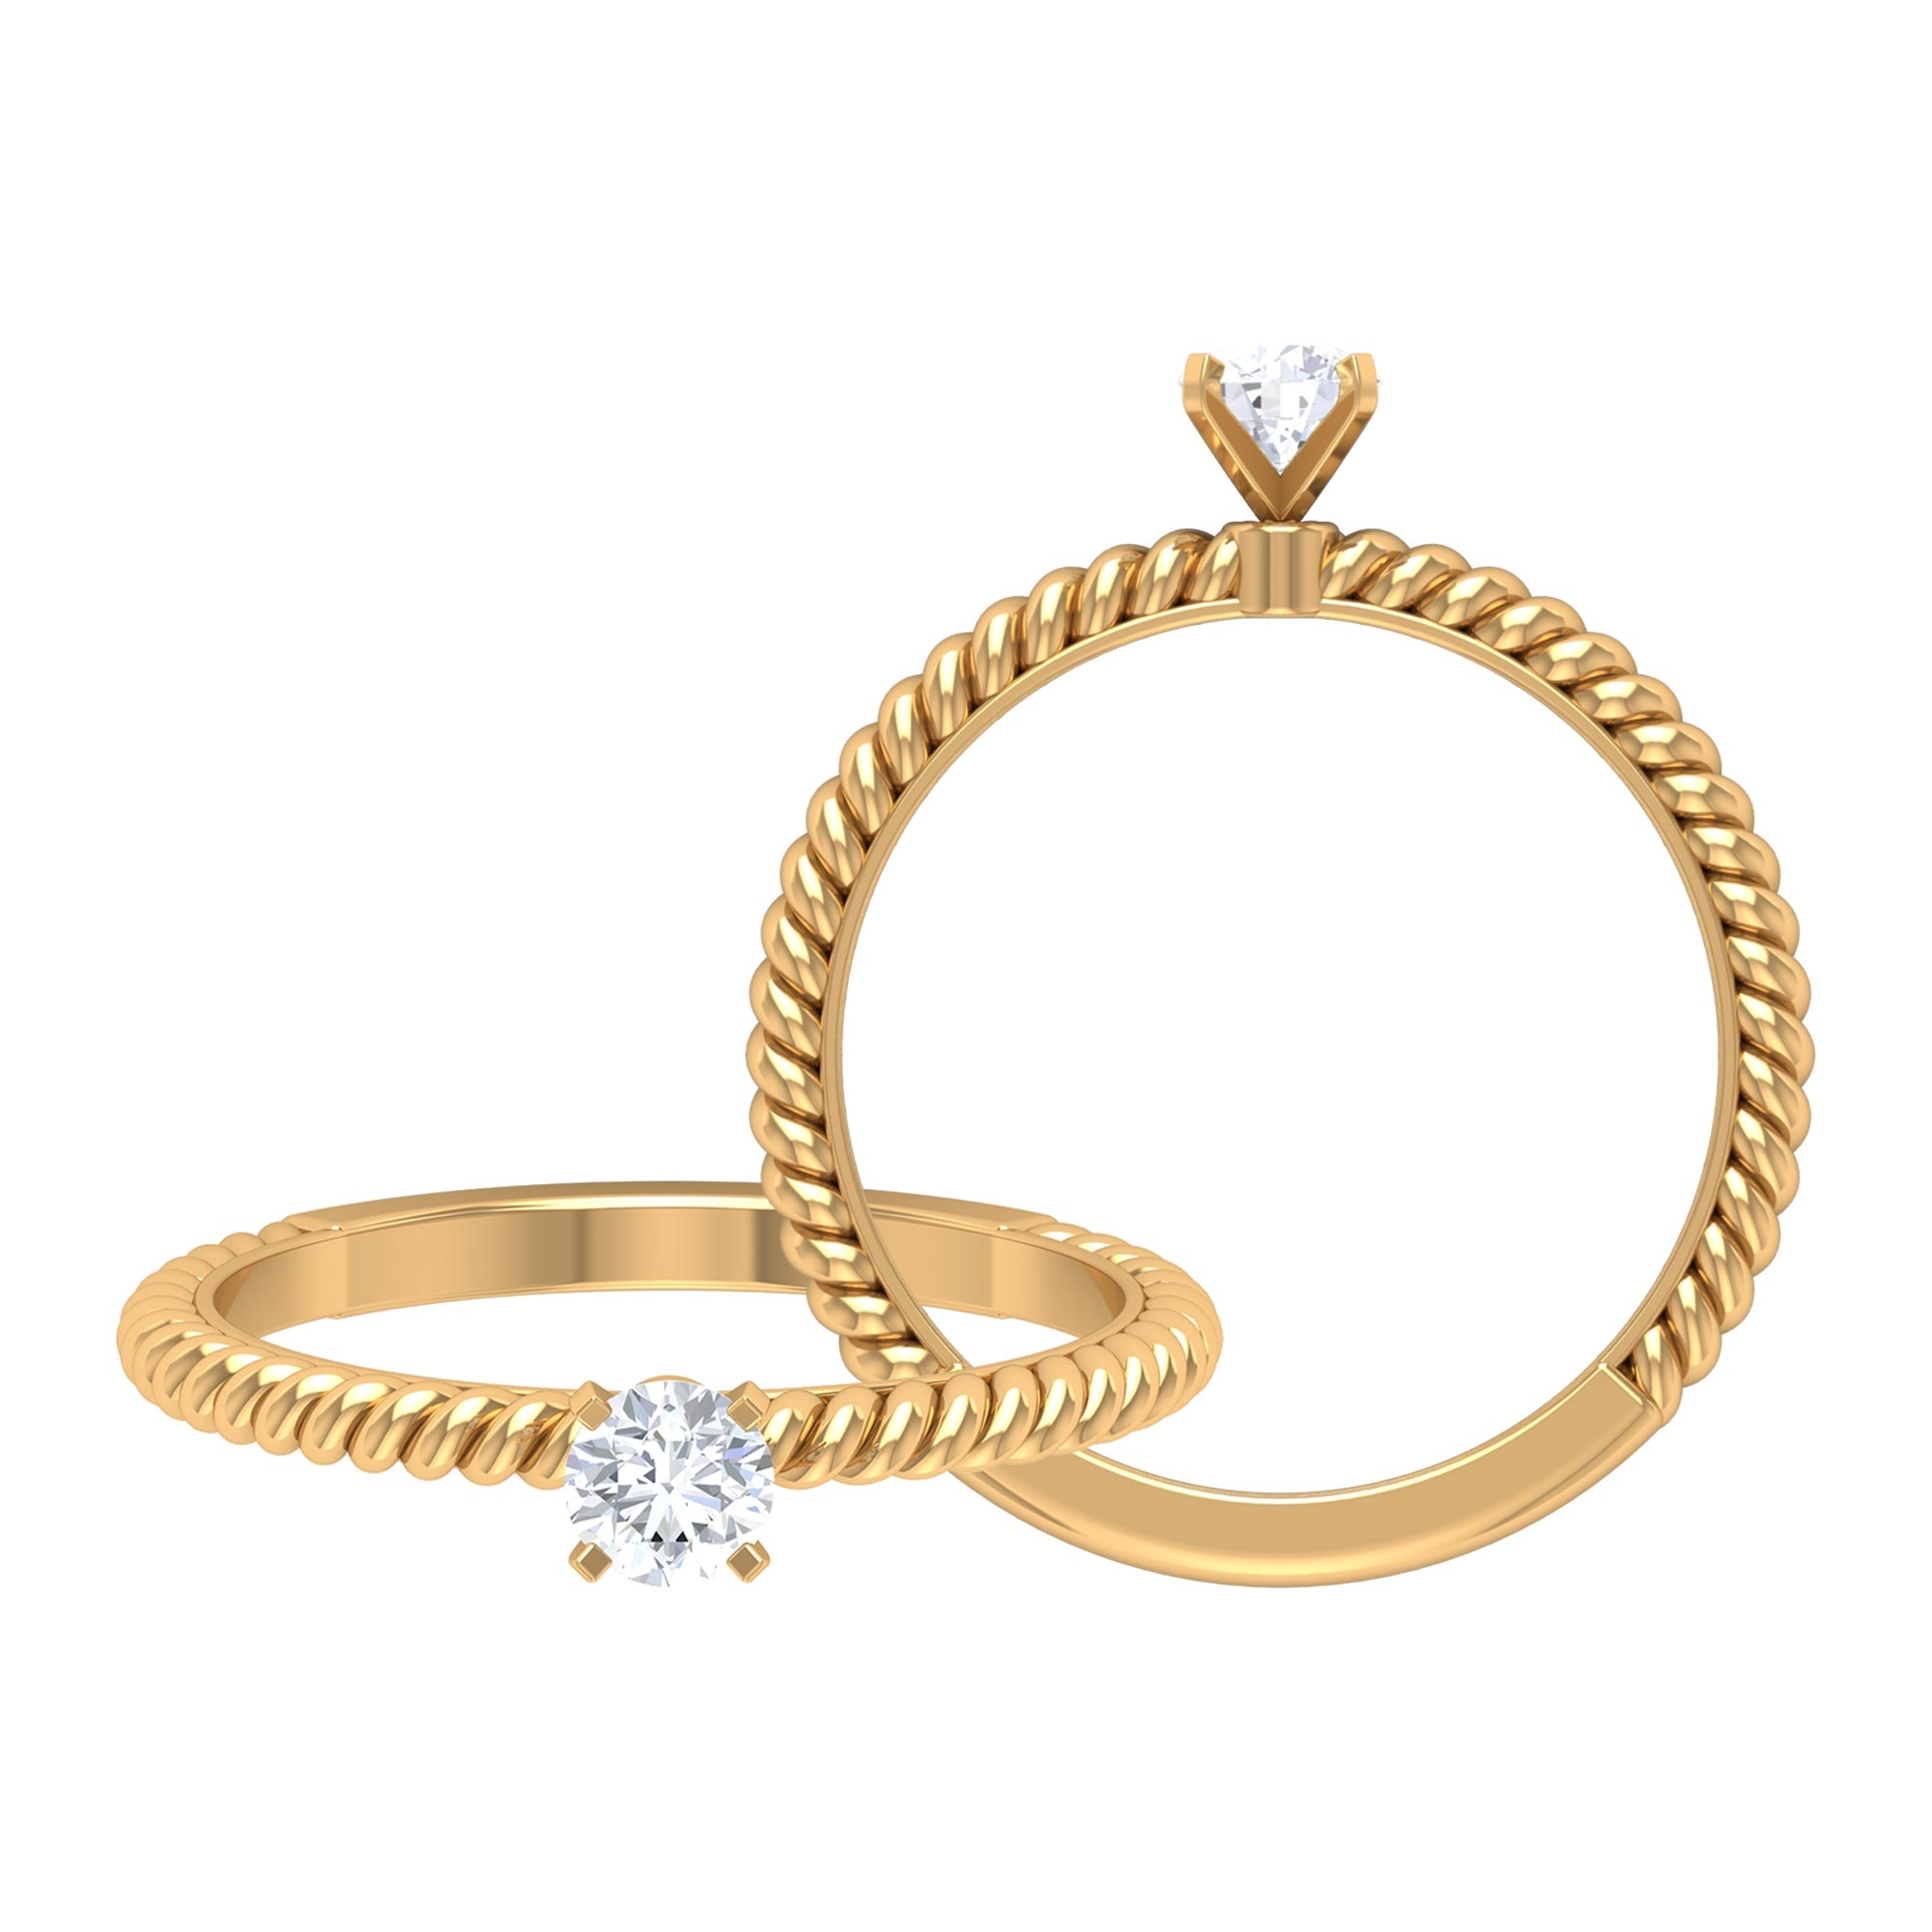 4 MM Round Cut Diamond Solitaire Ring in Peg Head Setting with Twisted Rope Details